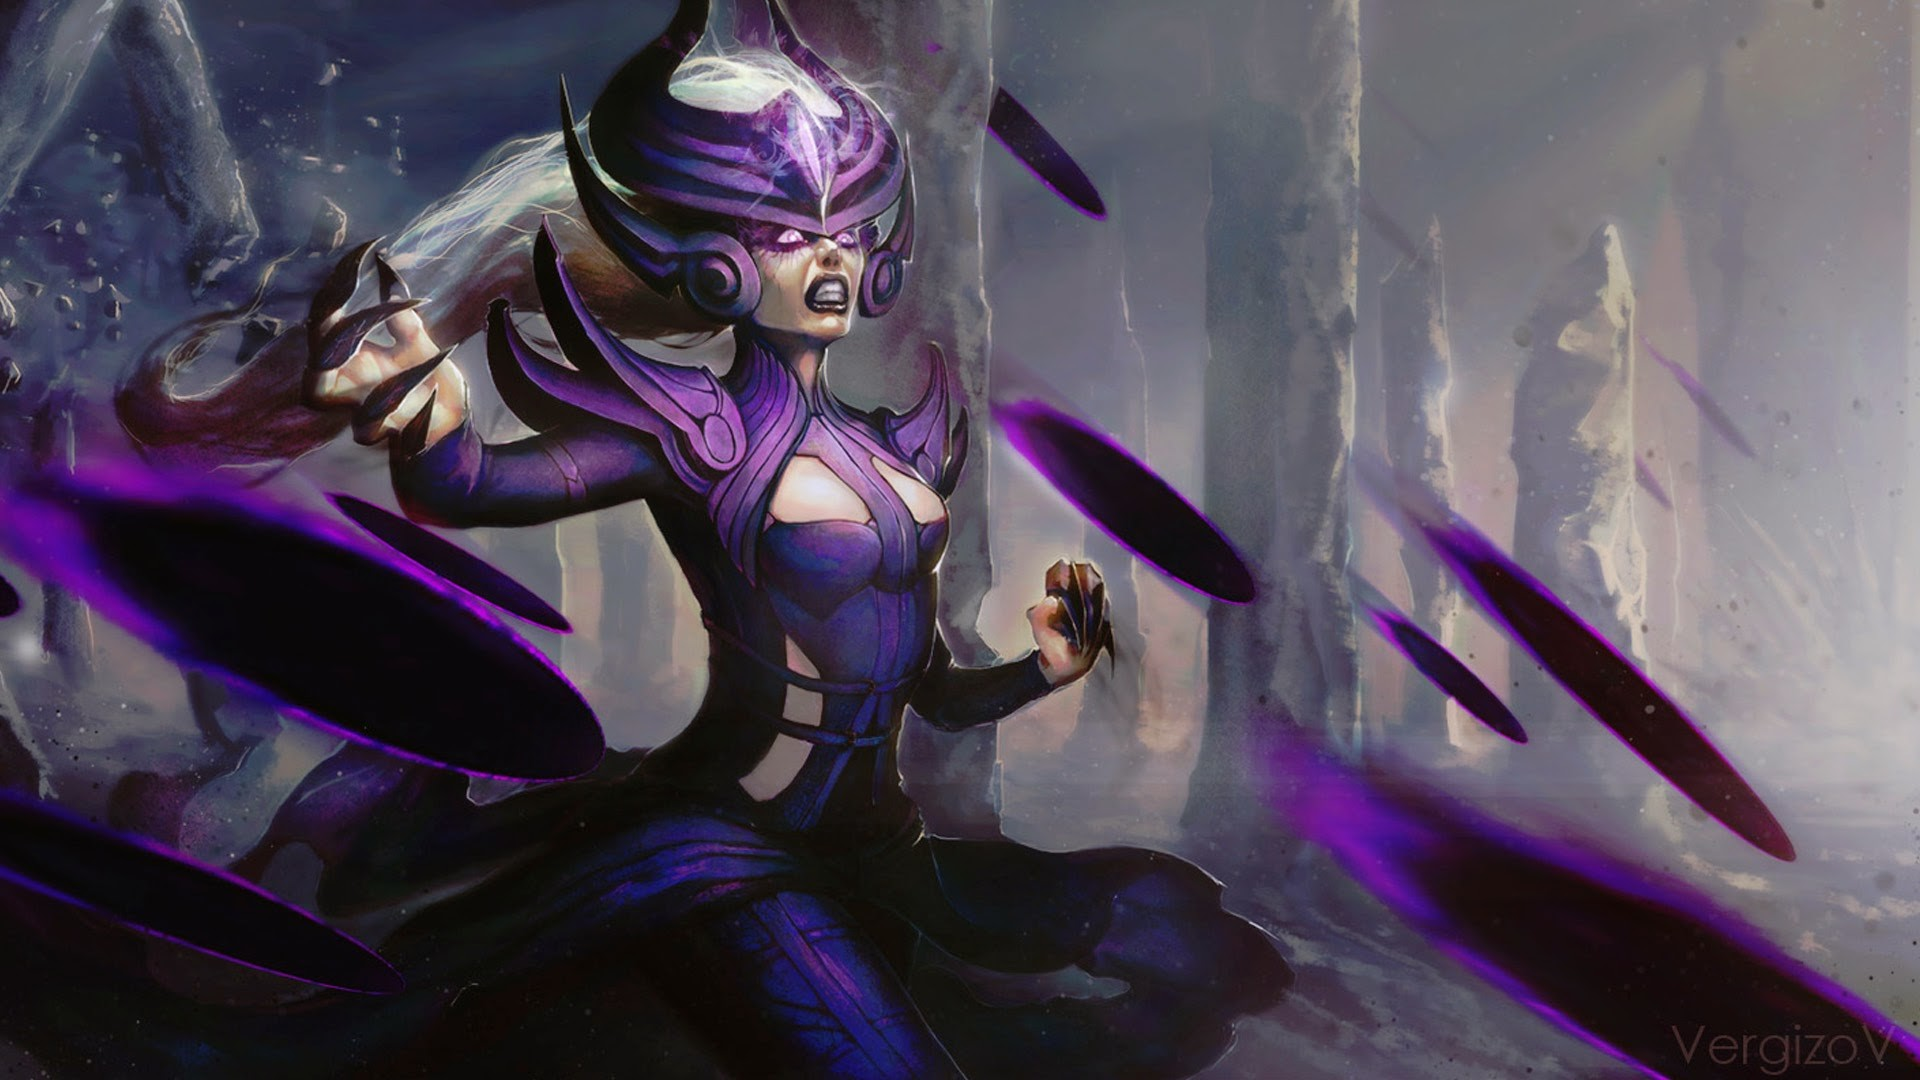 Lol Wallpapers Hd 1980x1080 Syndra Wallpaper 71 Images